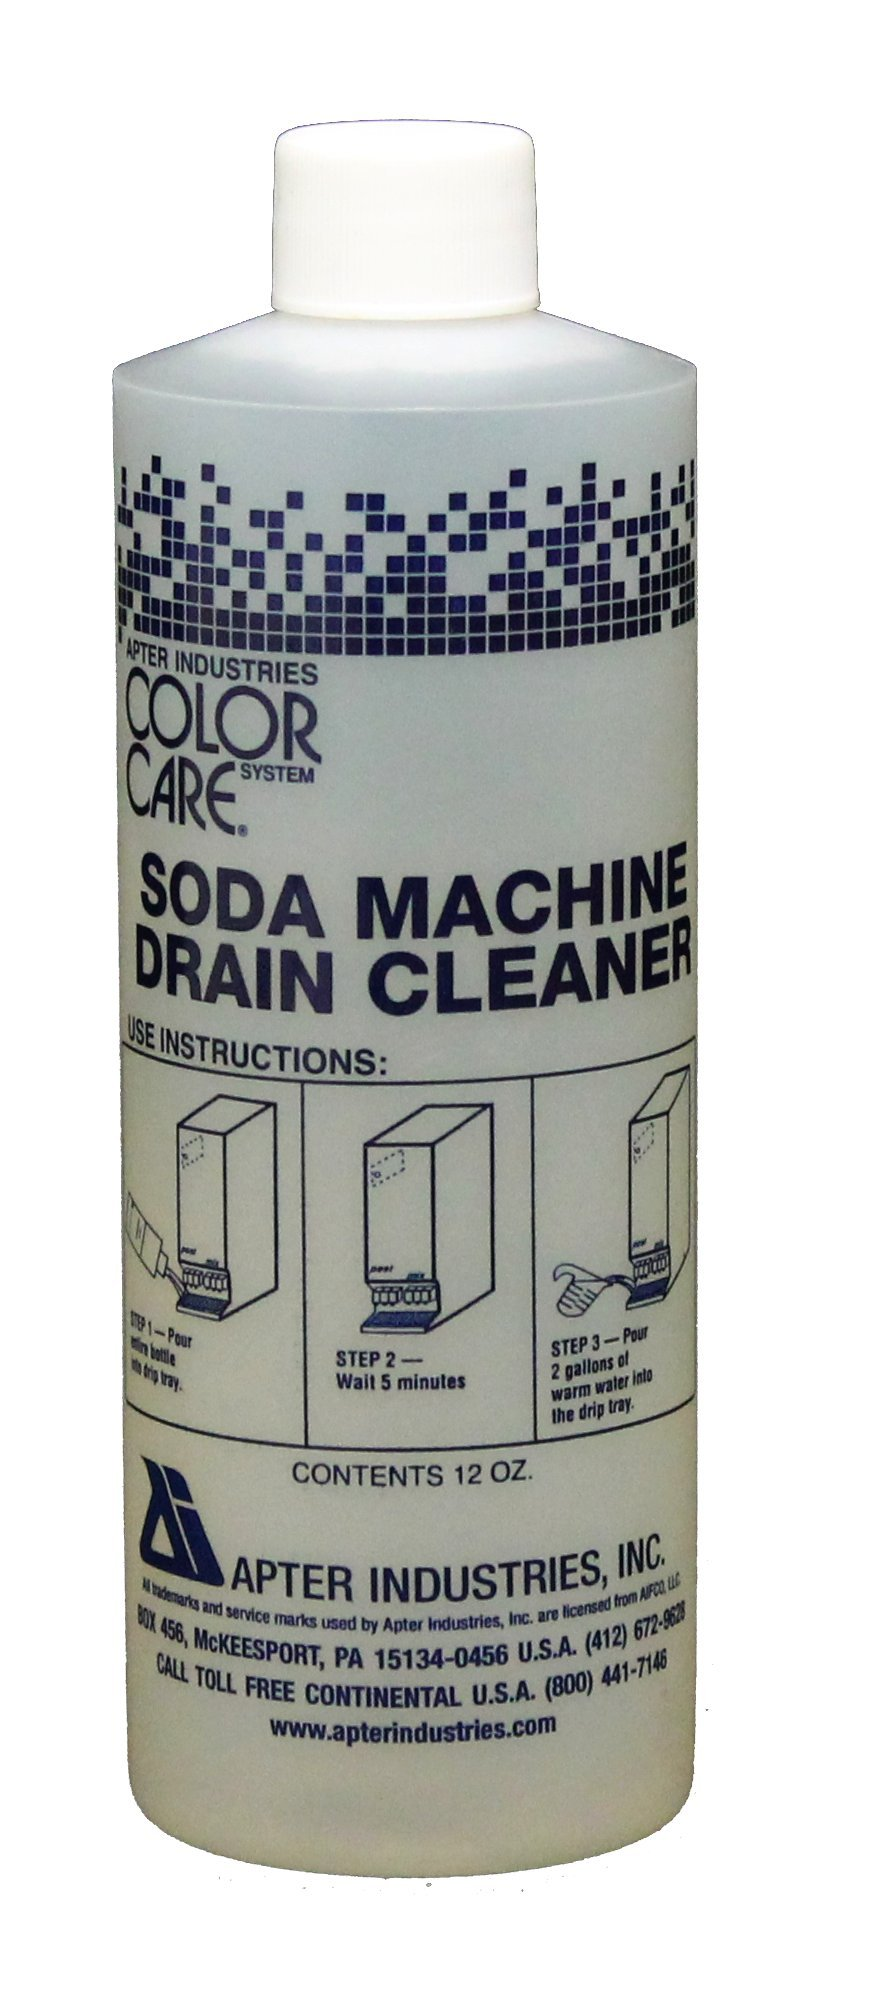 Apter Industries 13-SMDC-6/12 Soda Machine Drain Cleaner, 12 oz. (Pack of 6)